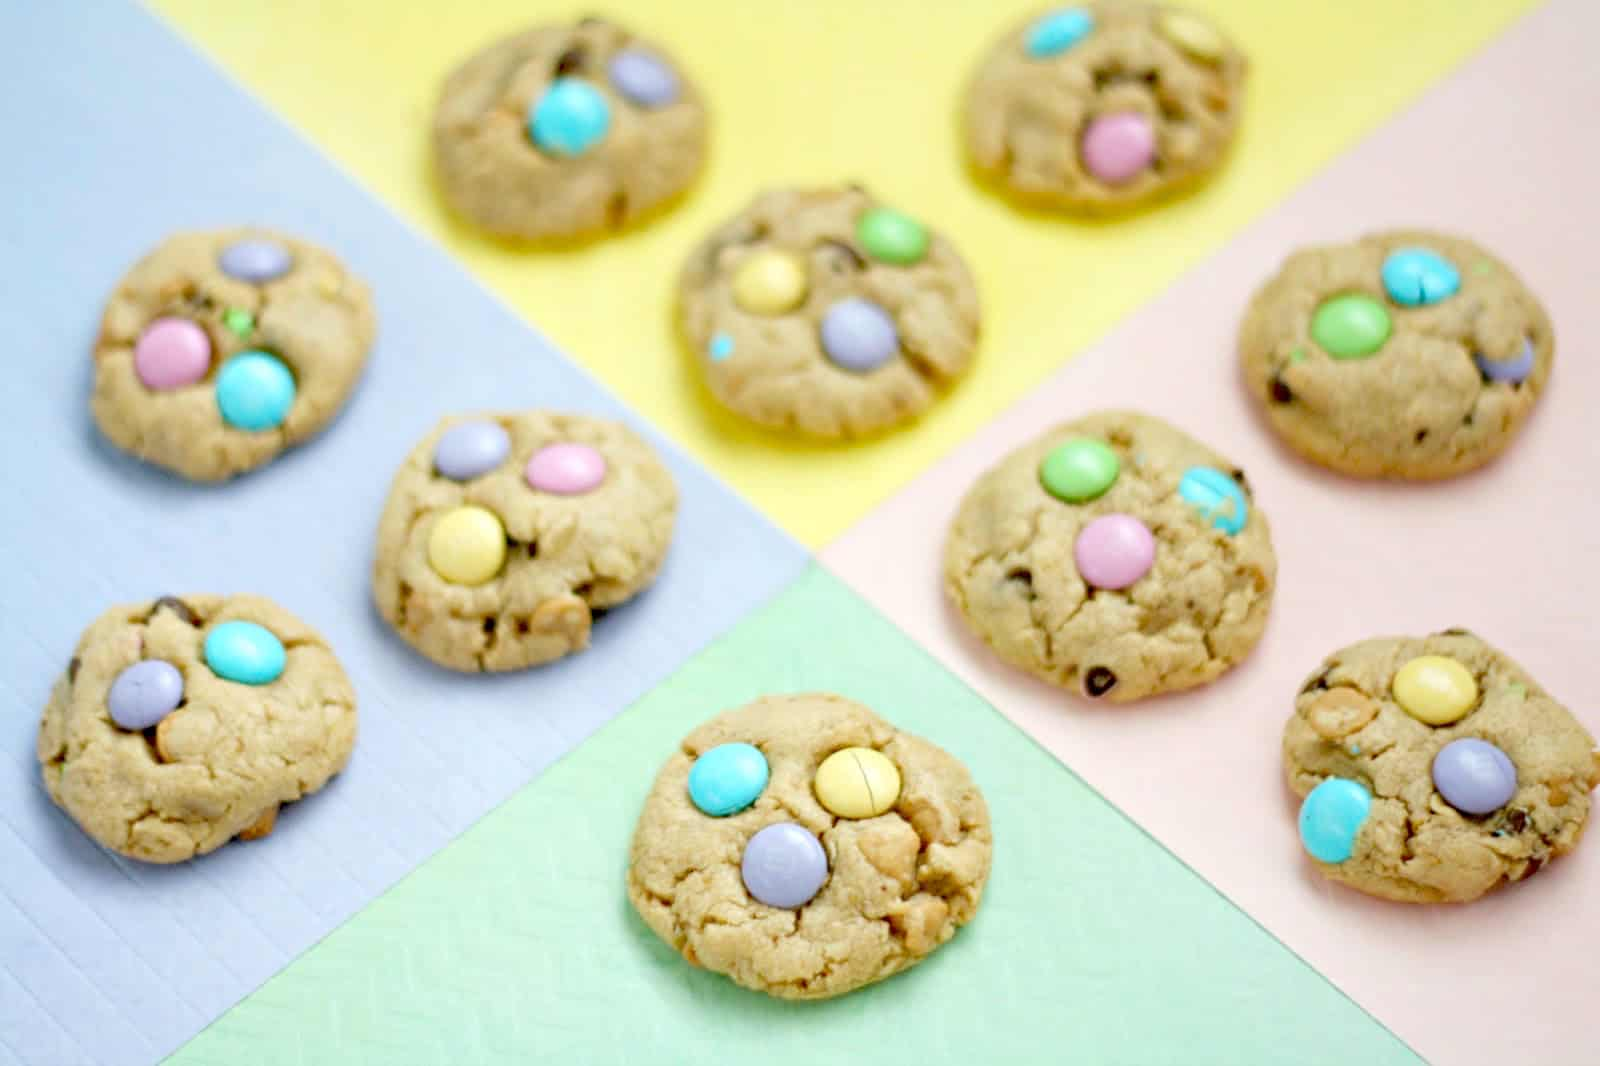 These delicious Easter cookies are loaded with M&Ms, and are the perfectly chewy, peanut buttery, oat-y, chocolatey way to celebrate the upcoming holiday!